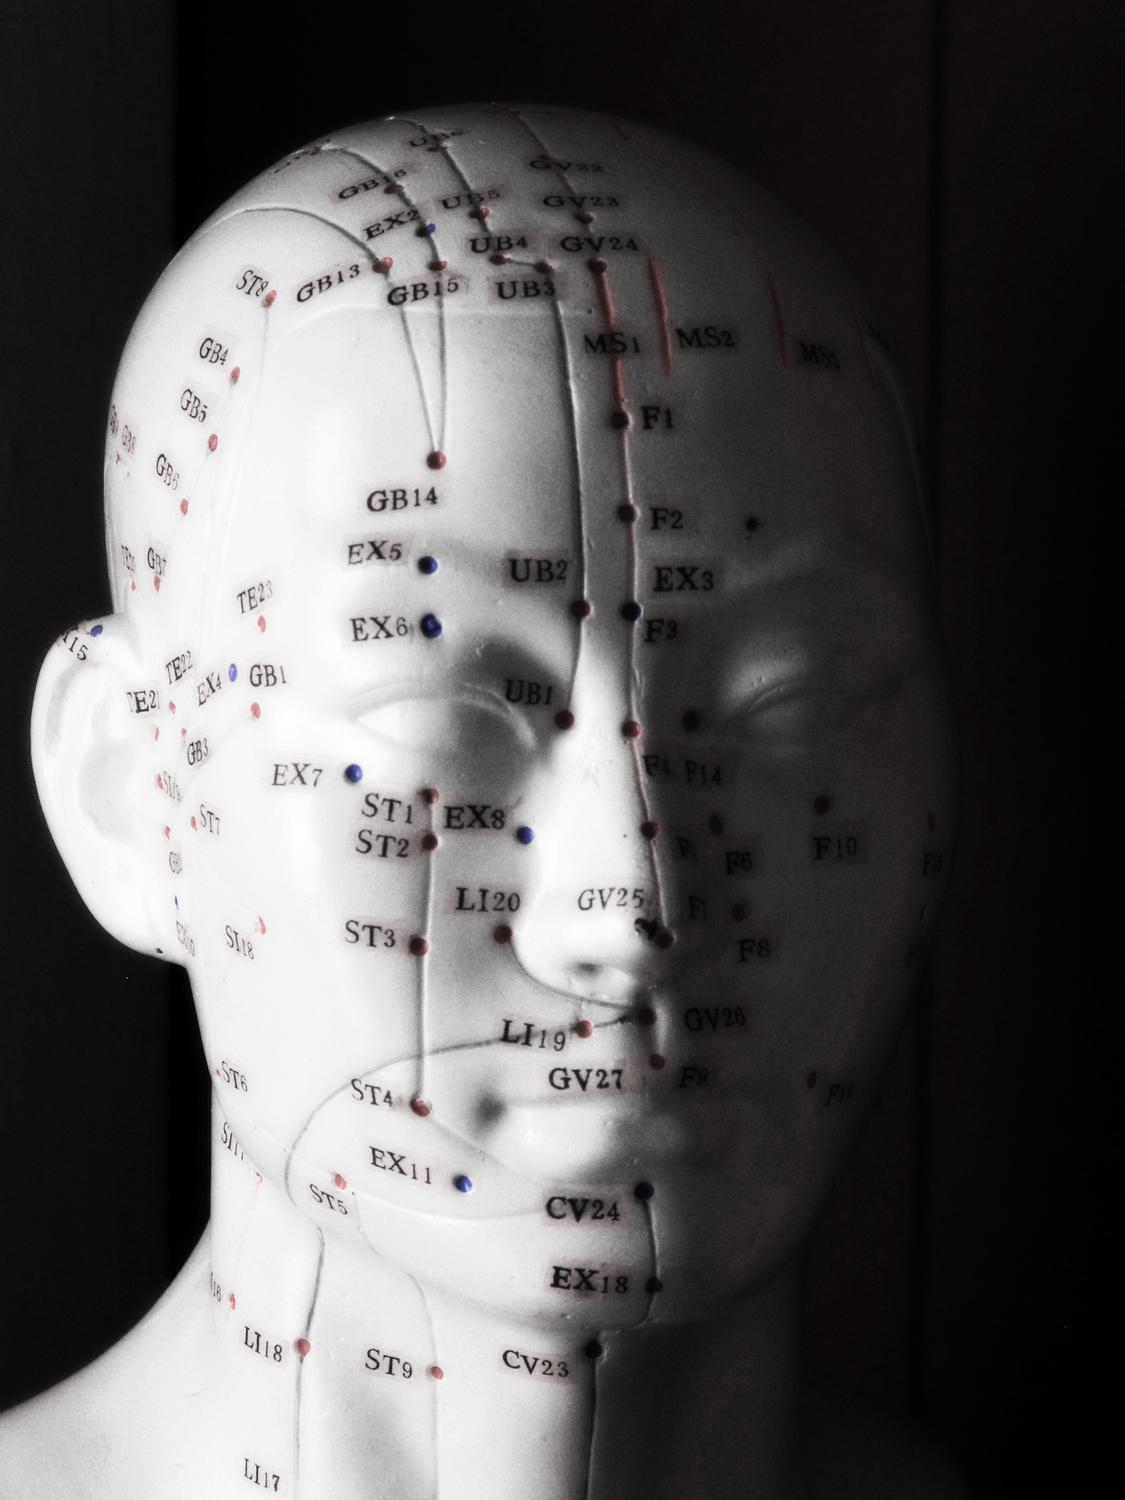 Acupuncture head - Portrait of Pinhead - Kodak Easyshare P880 - - art  - photography - by Tony Karp